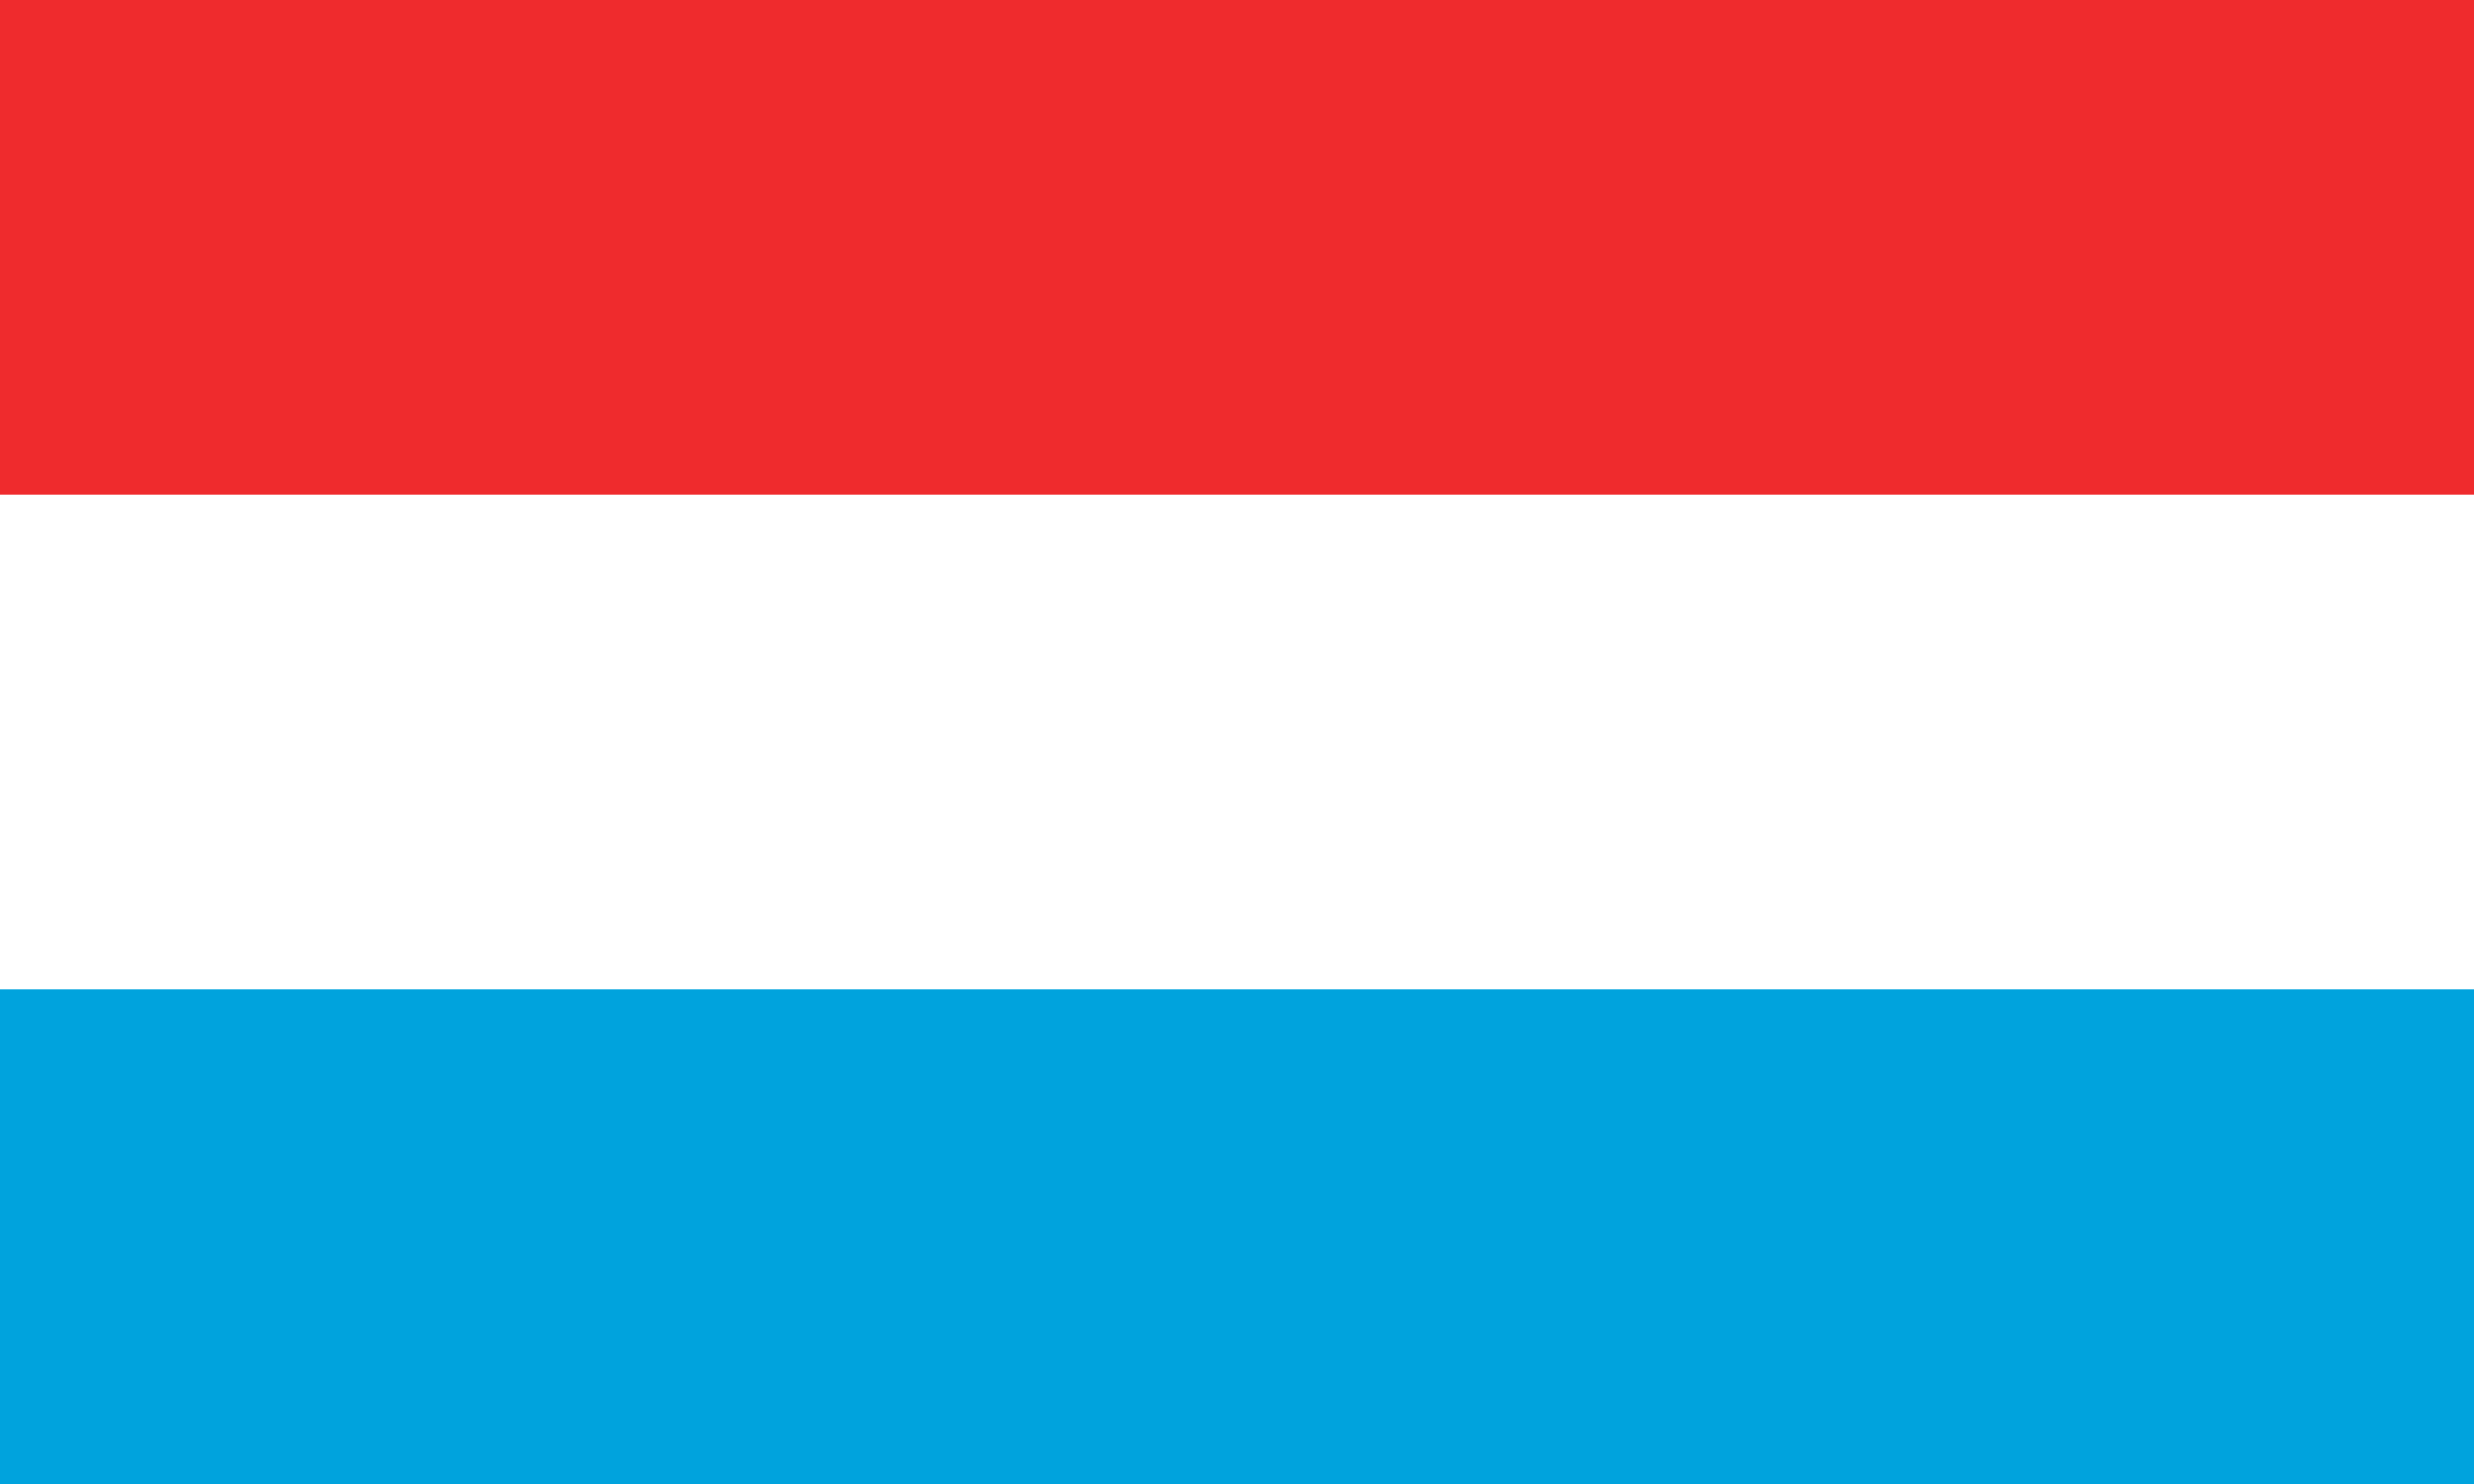 Luxembourg_Large_Flag.png?m=